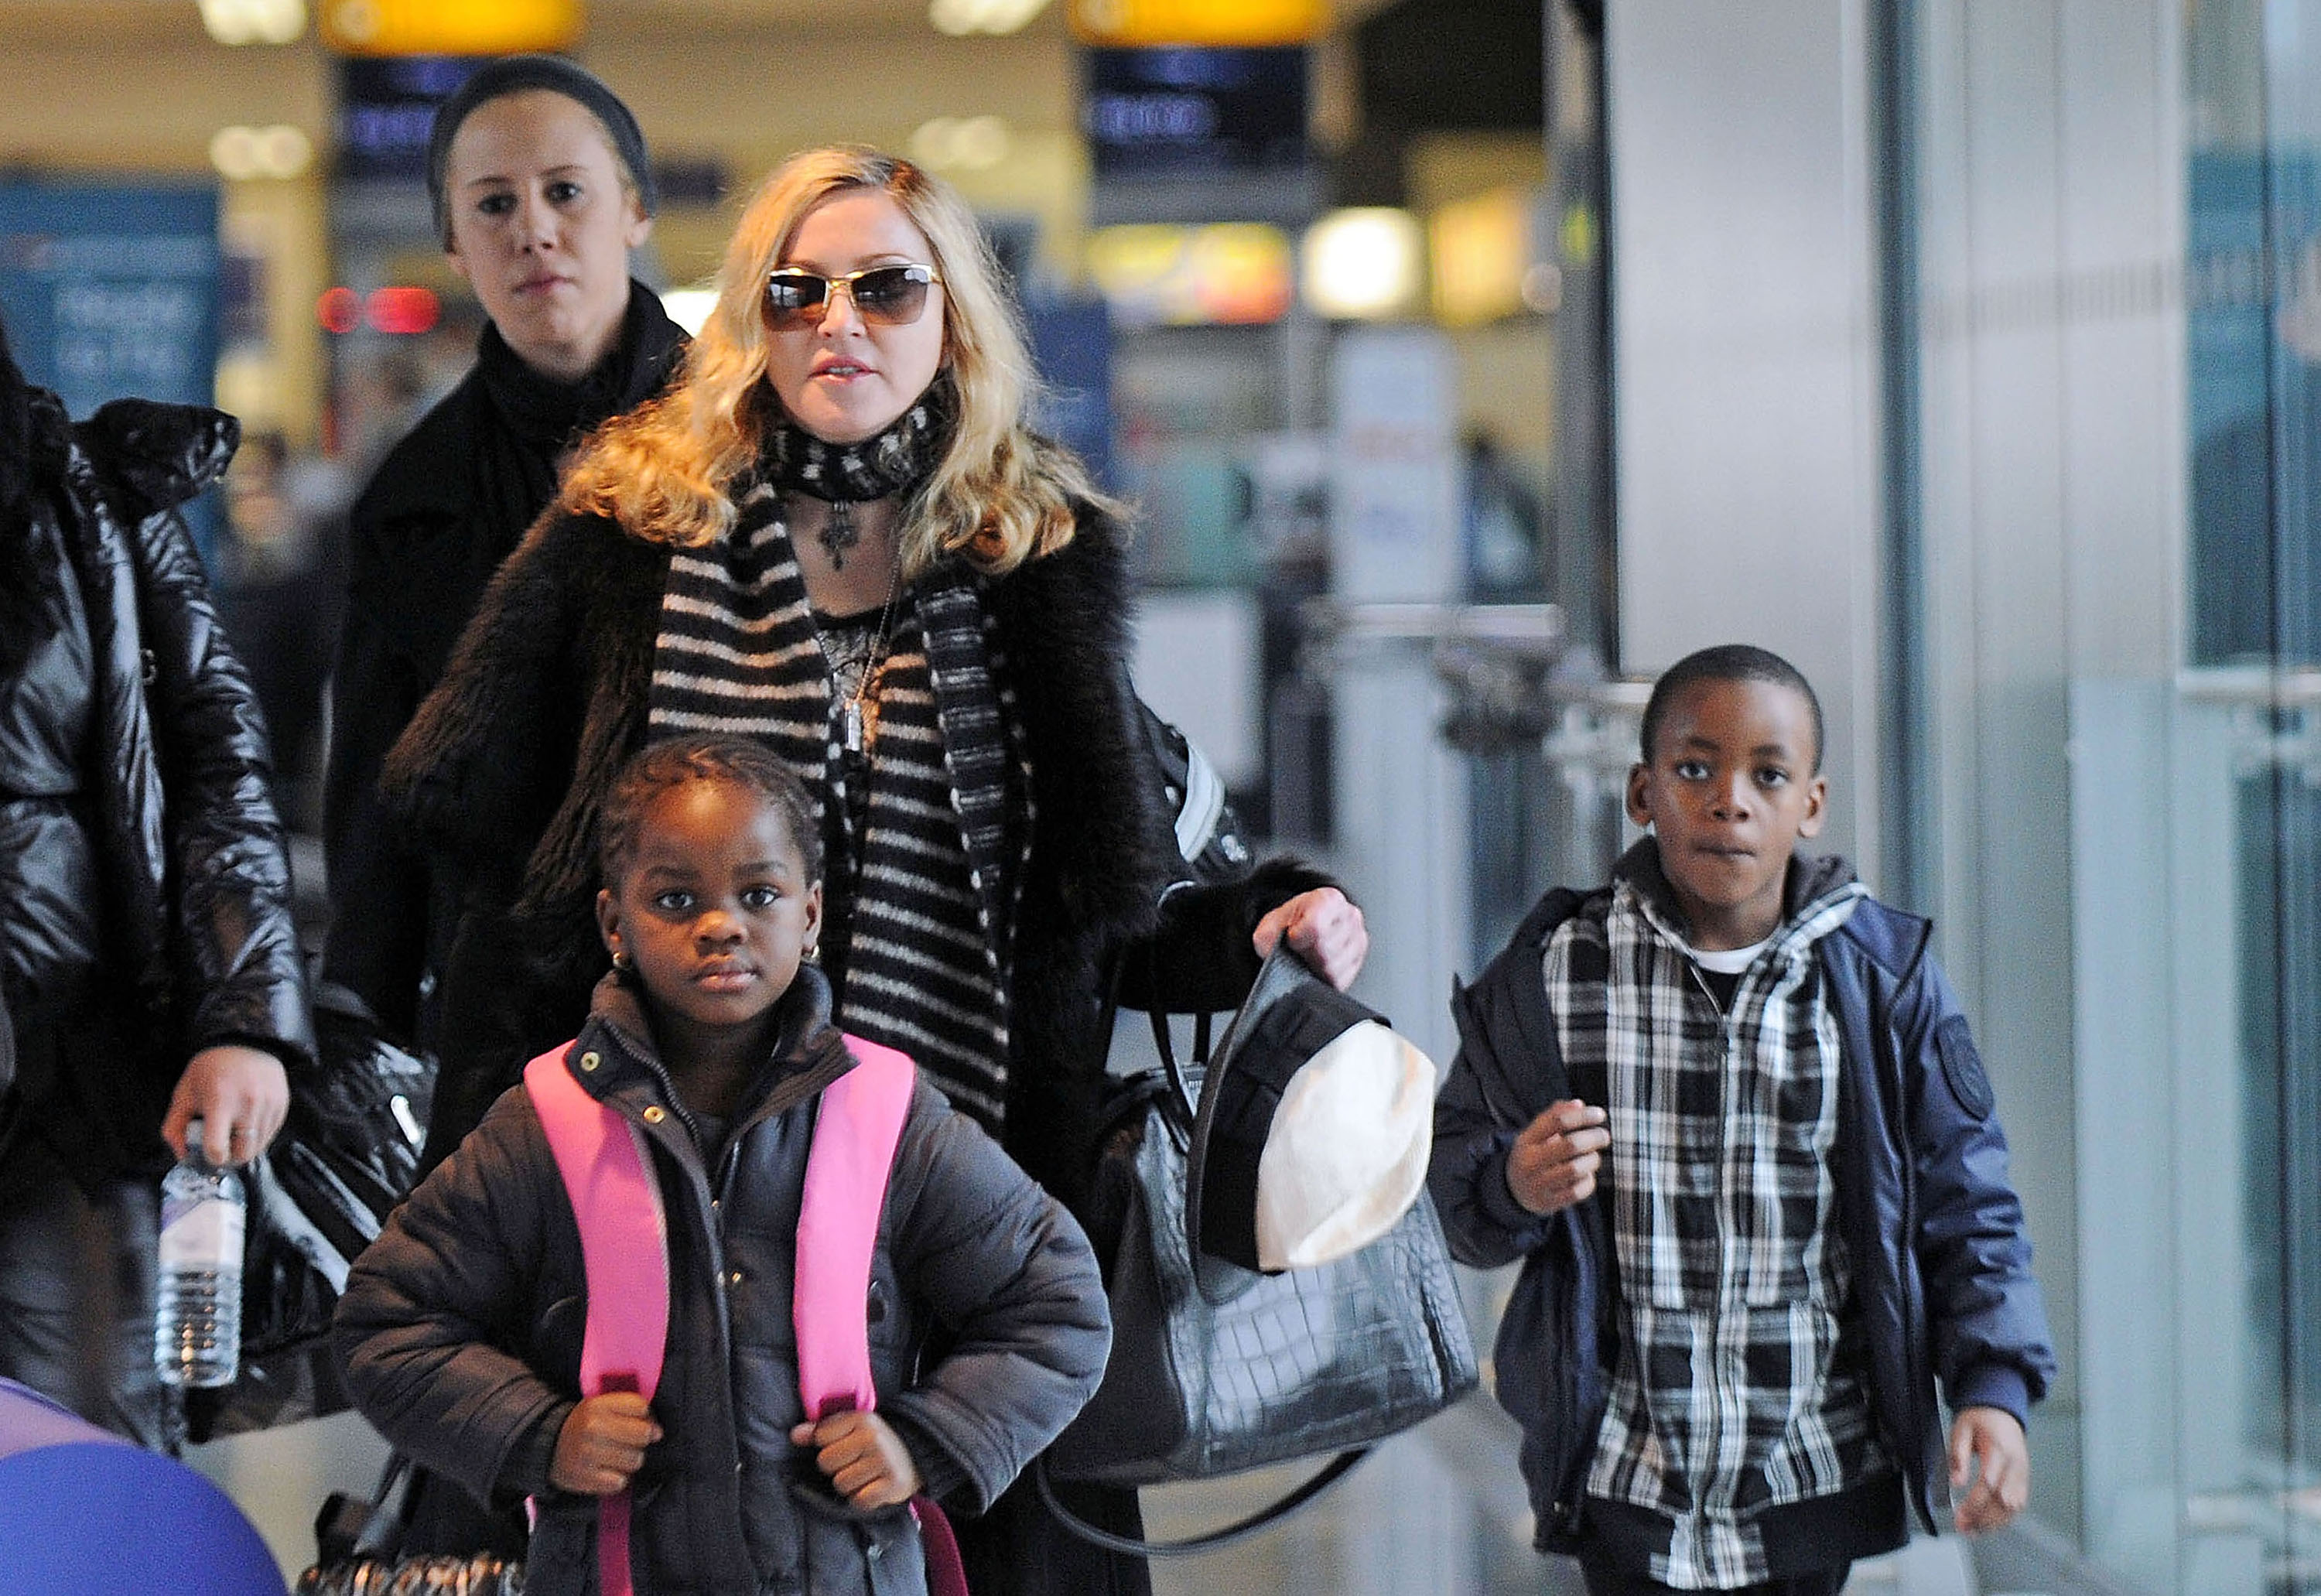 Madonna walks with son David and daughter Mercy in London, UK on April 2, 2011 | Photo: Getty Images